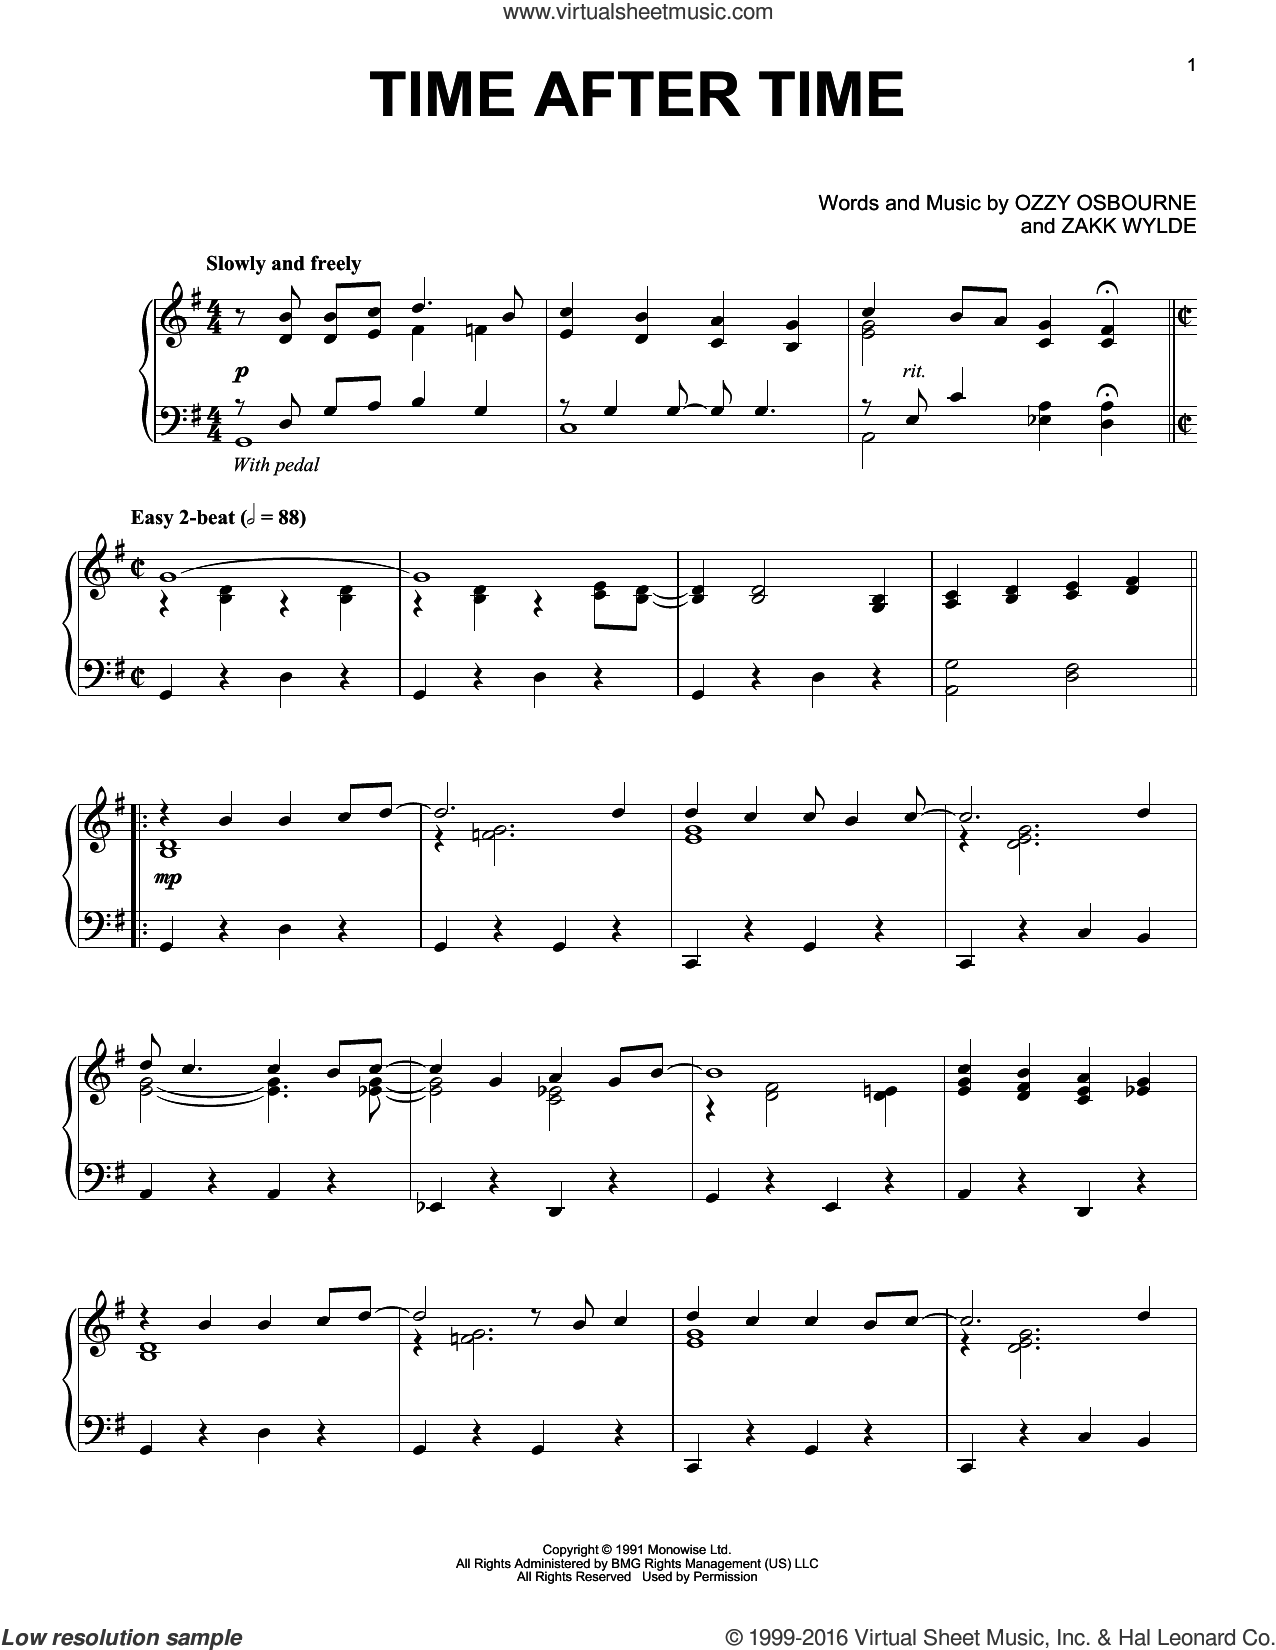 Time After Time sheet music for piano solo by Ozzy Osbourne and Zakk Wylde. Score Image Preview.